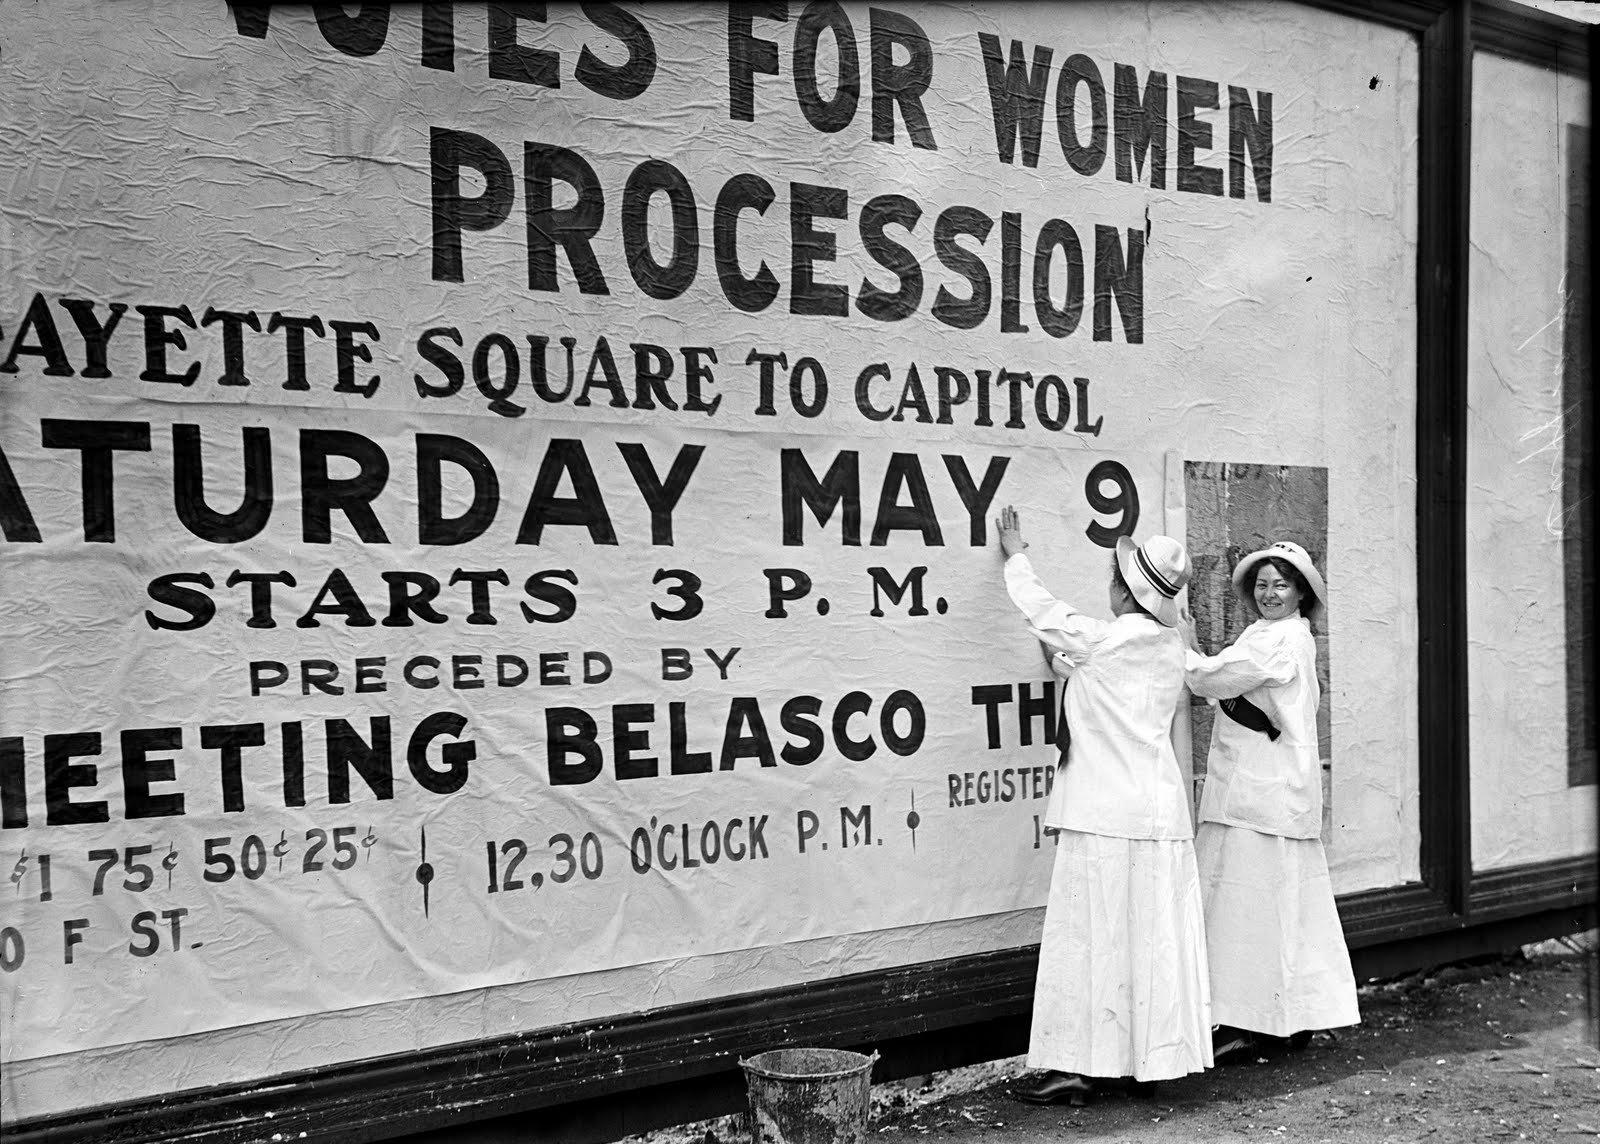 a history of the woman suffrage in the united states  their deprivation to vote the women suffrage was a movement in history that  revolutionizes the disenfranchisement in the united states.